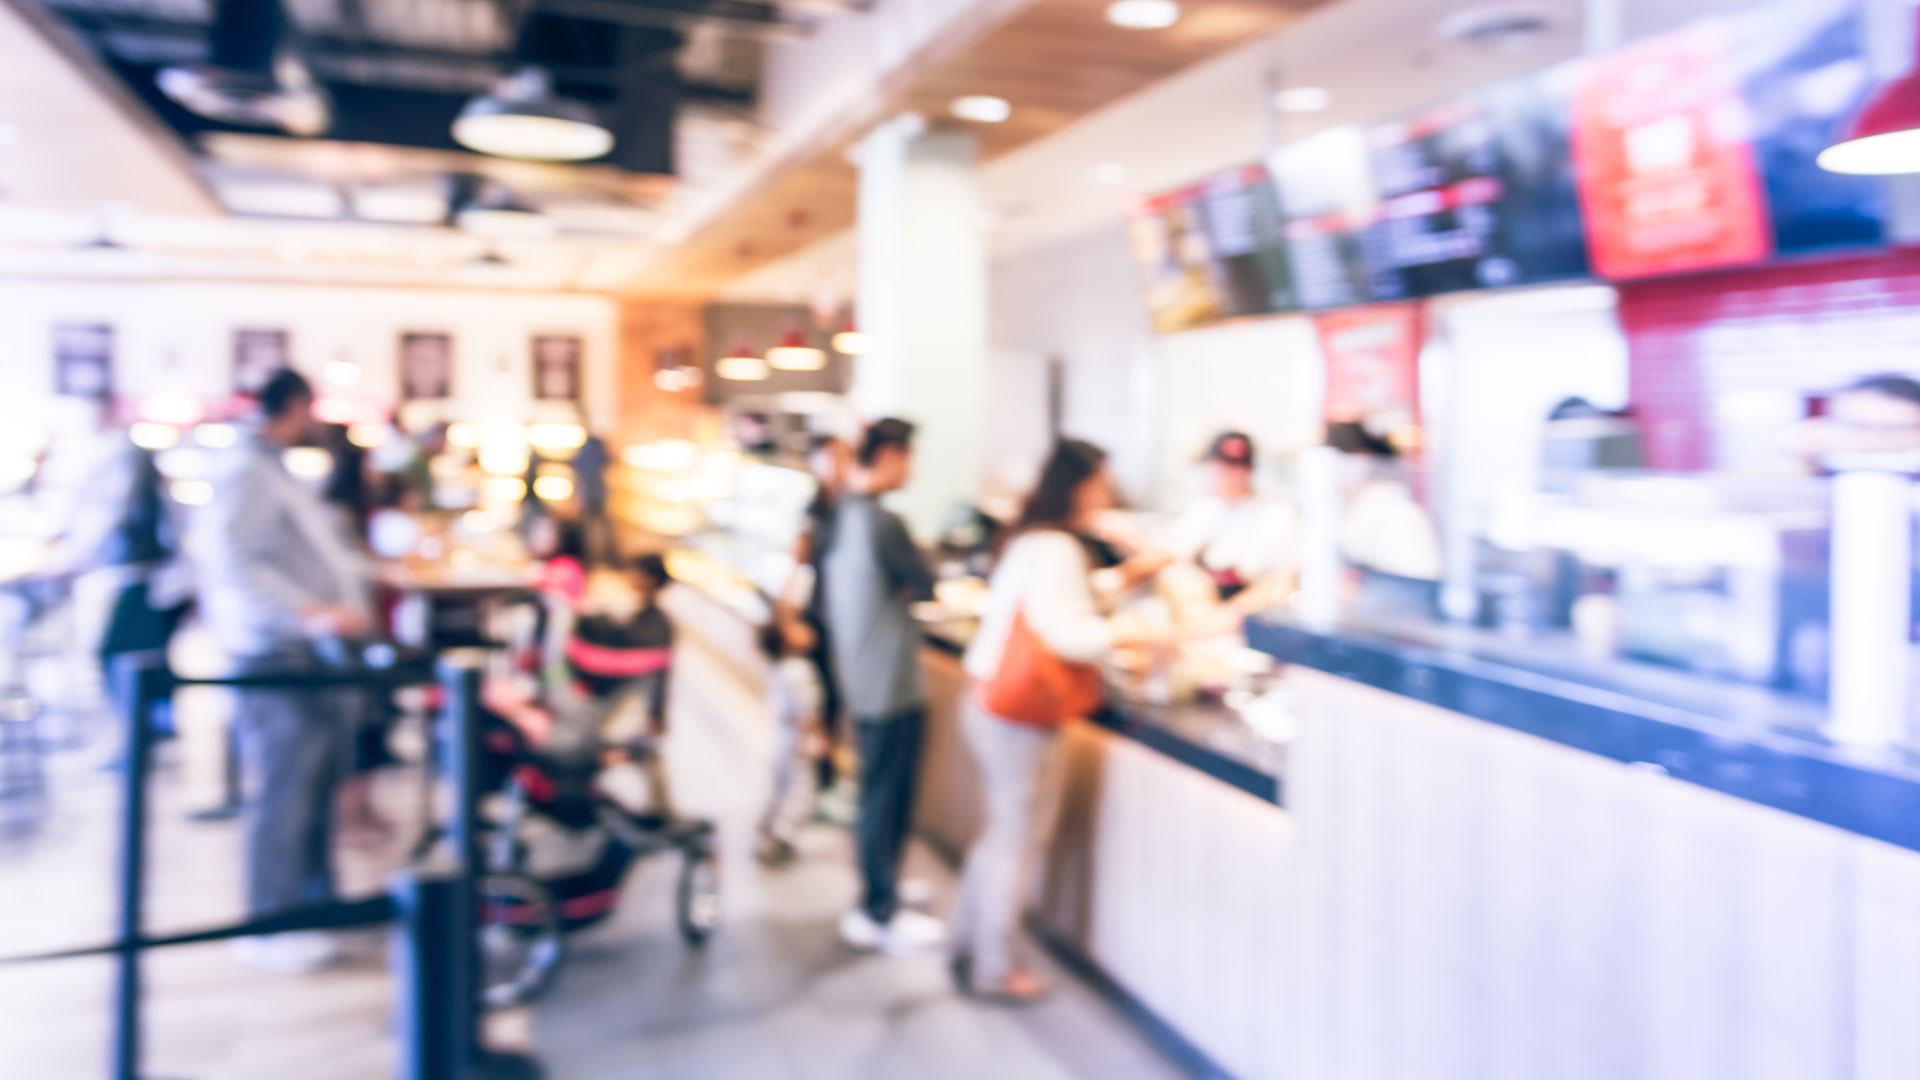 Blurred picture of people ordering food at quick serve restaurant